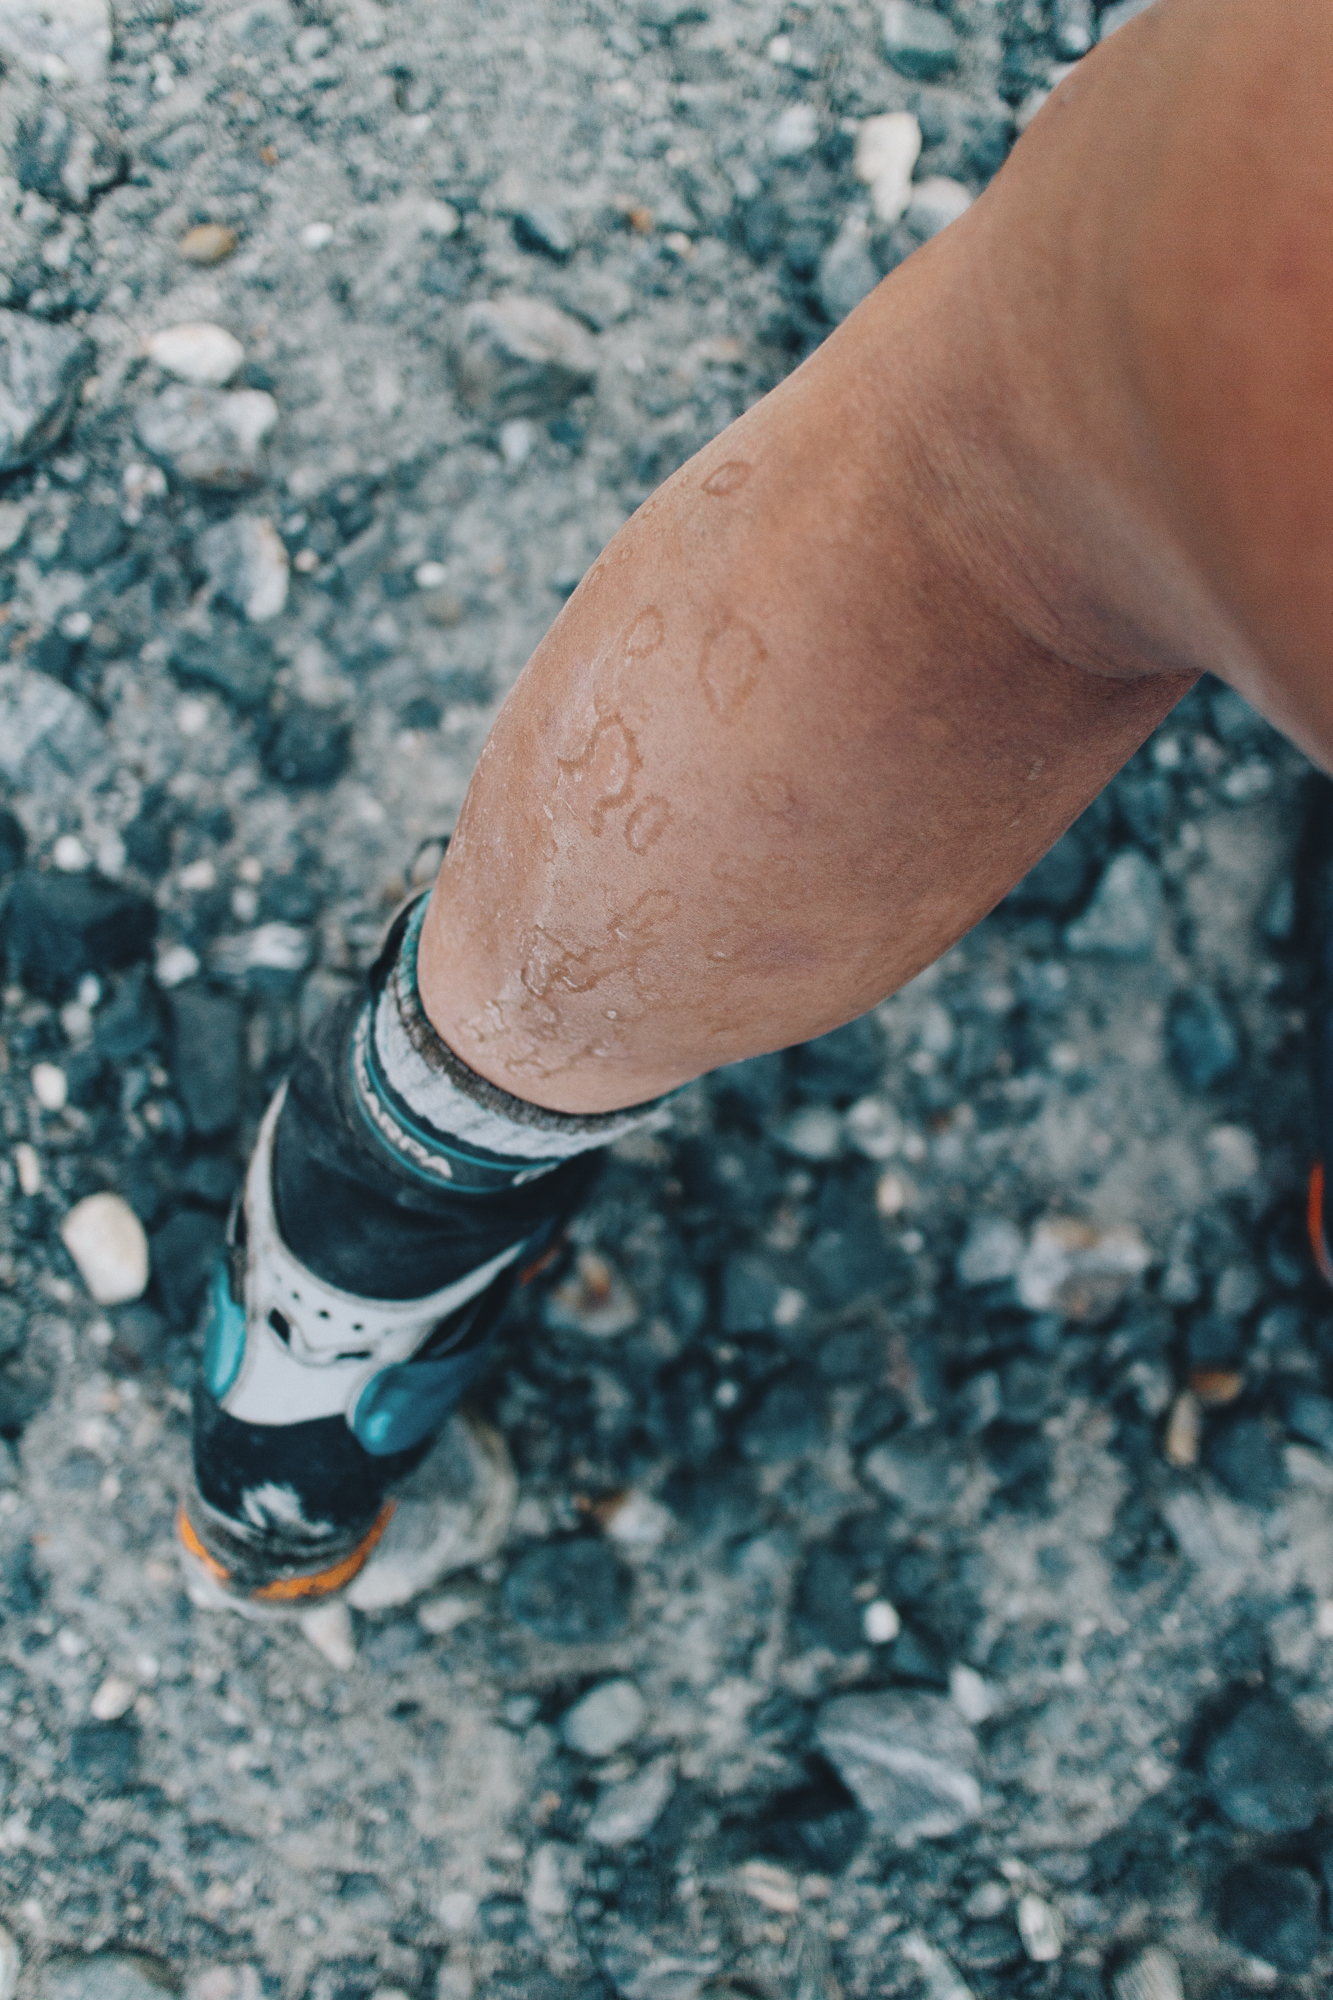 I reached the summit in shorts and so much dirt, silt and snow were glued to my legs.